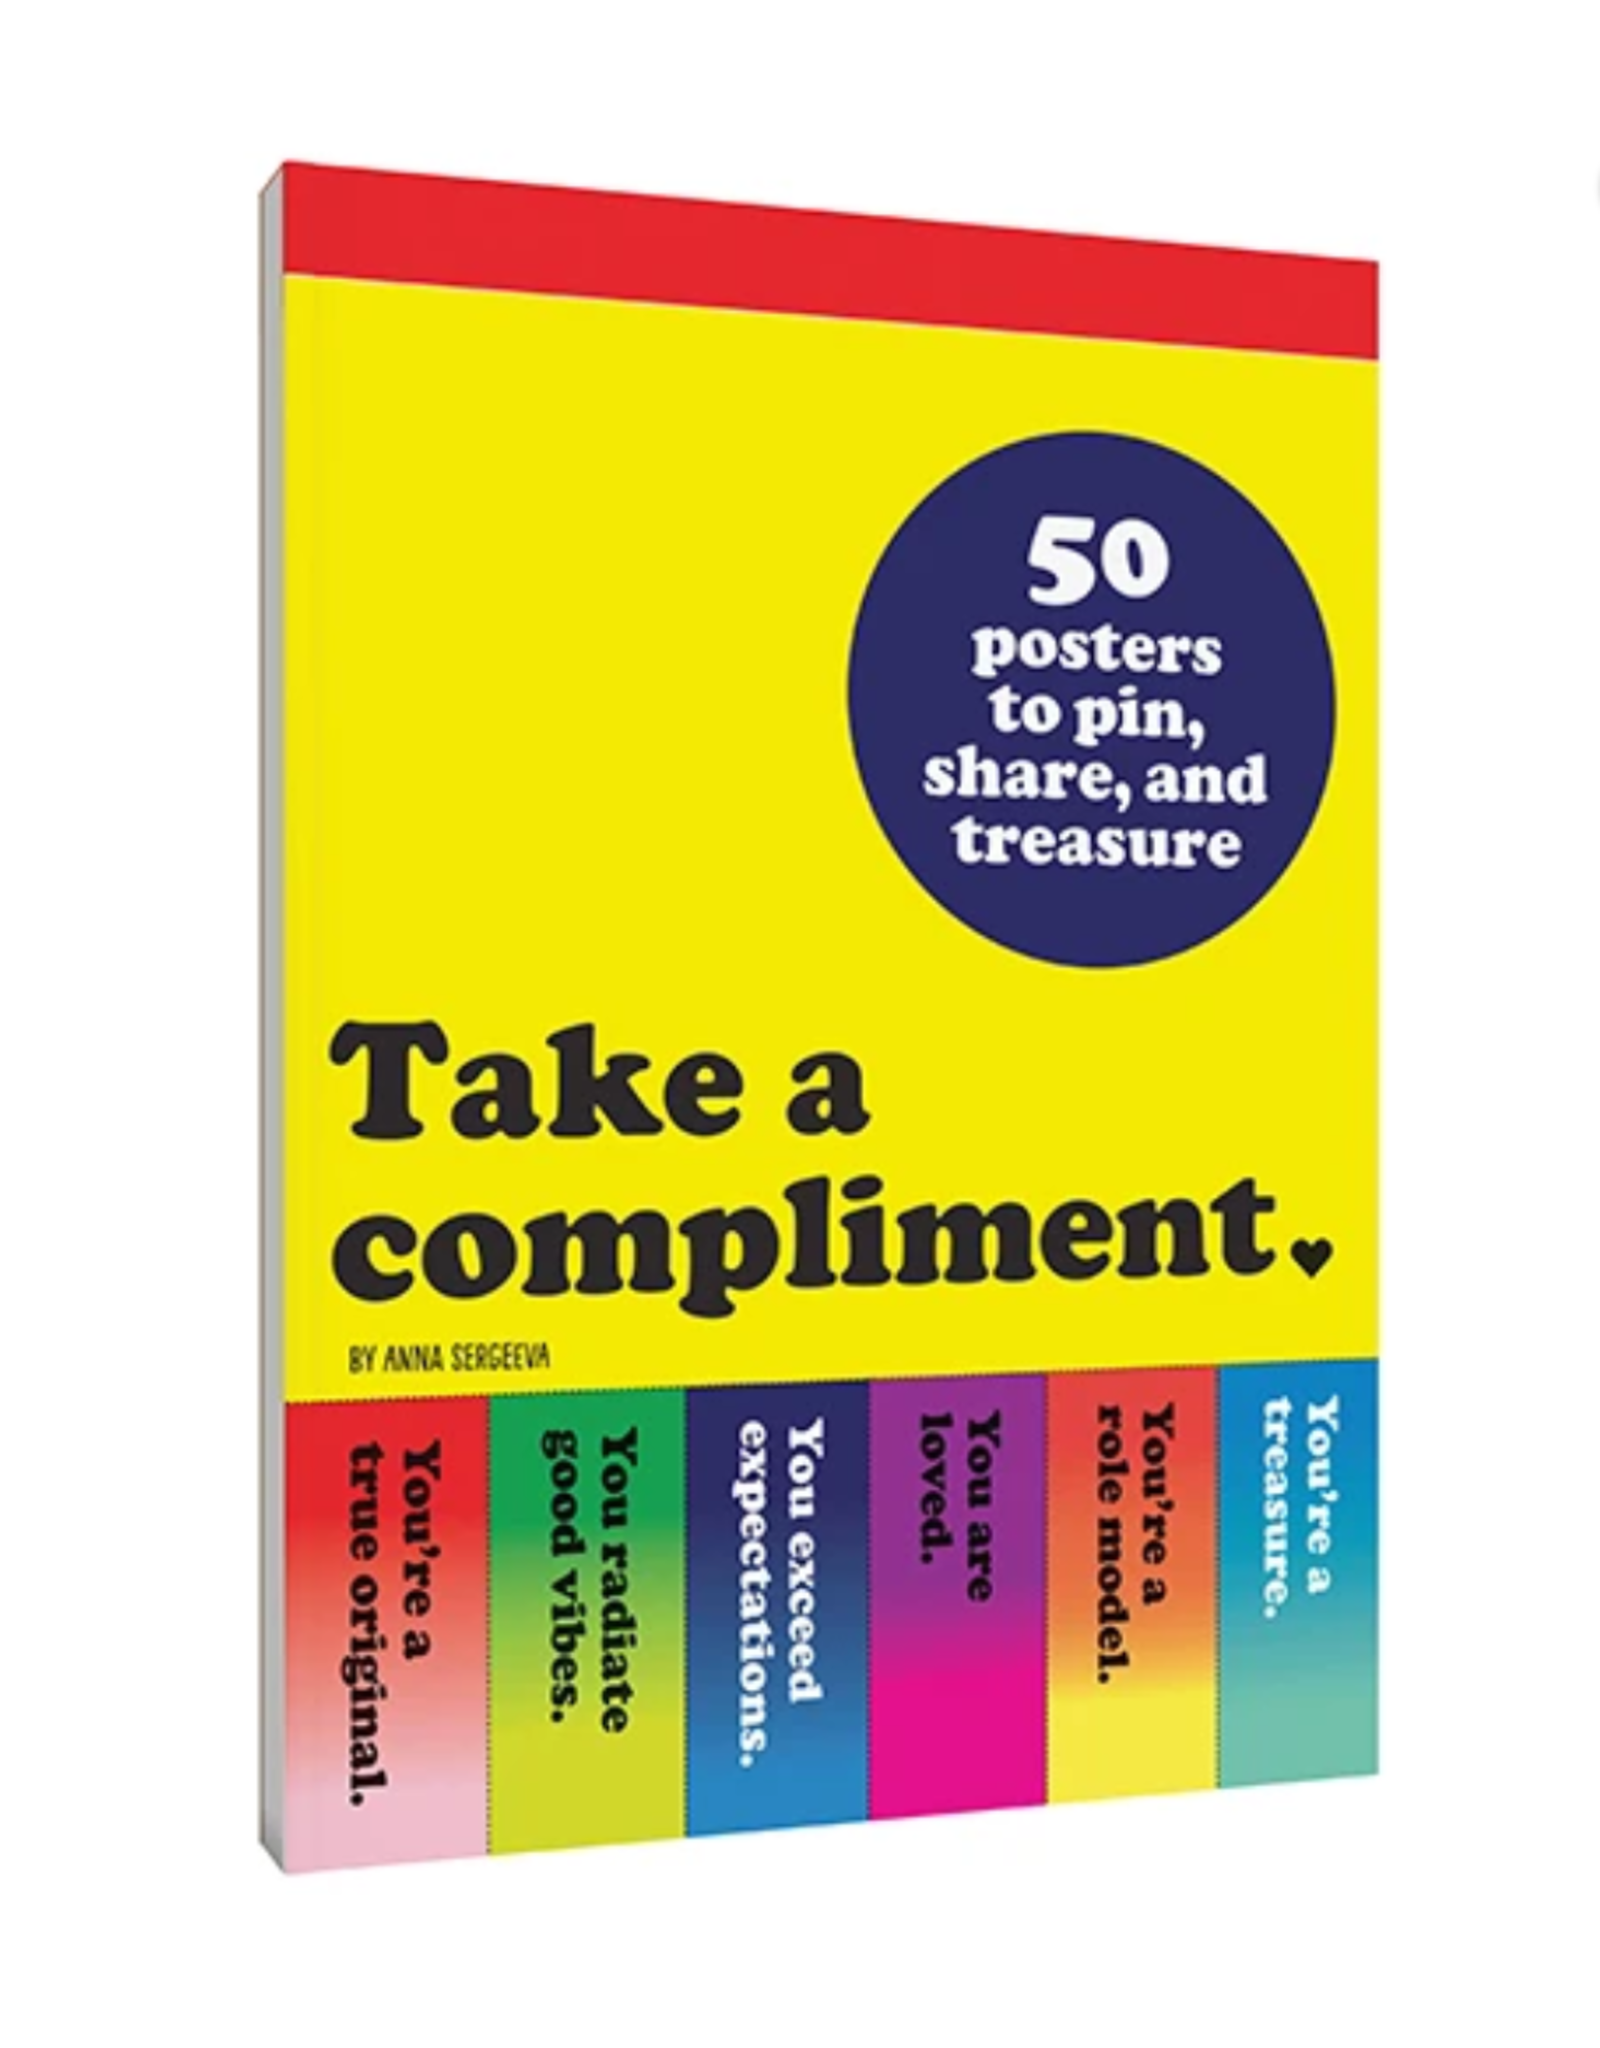 TAKE A COMPLIMENT 50 POSTERS